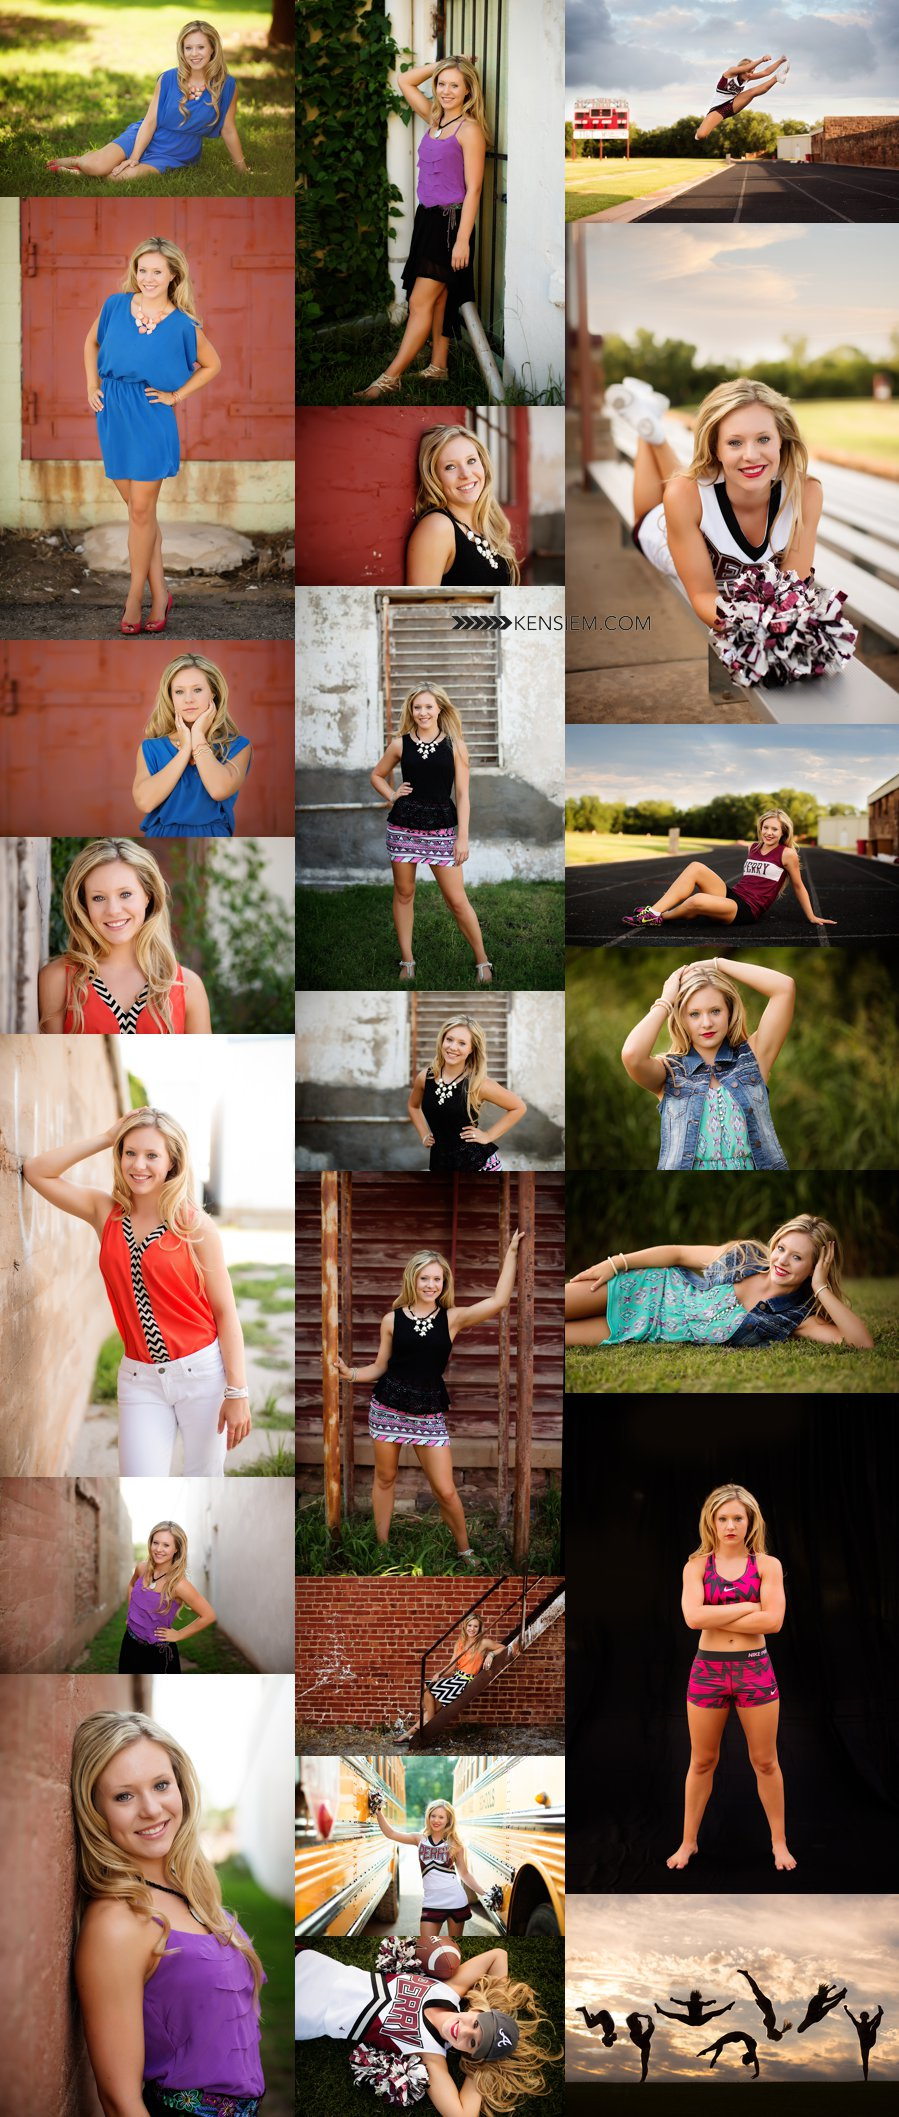 Winchester Virginia Senior Portraits. Senior Girl Poses. Outdoor senior portraits of a gorgeous cheerleader. www.kensiem.com | Winchester Virginia Photographer